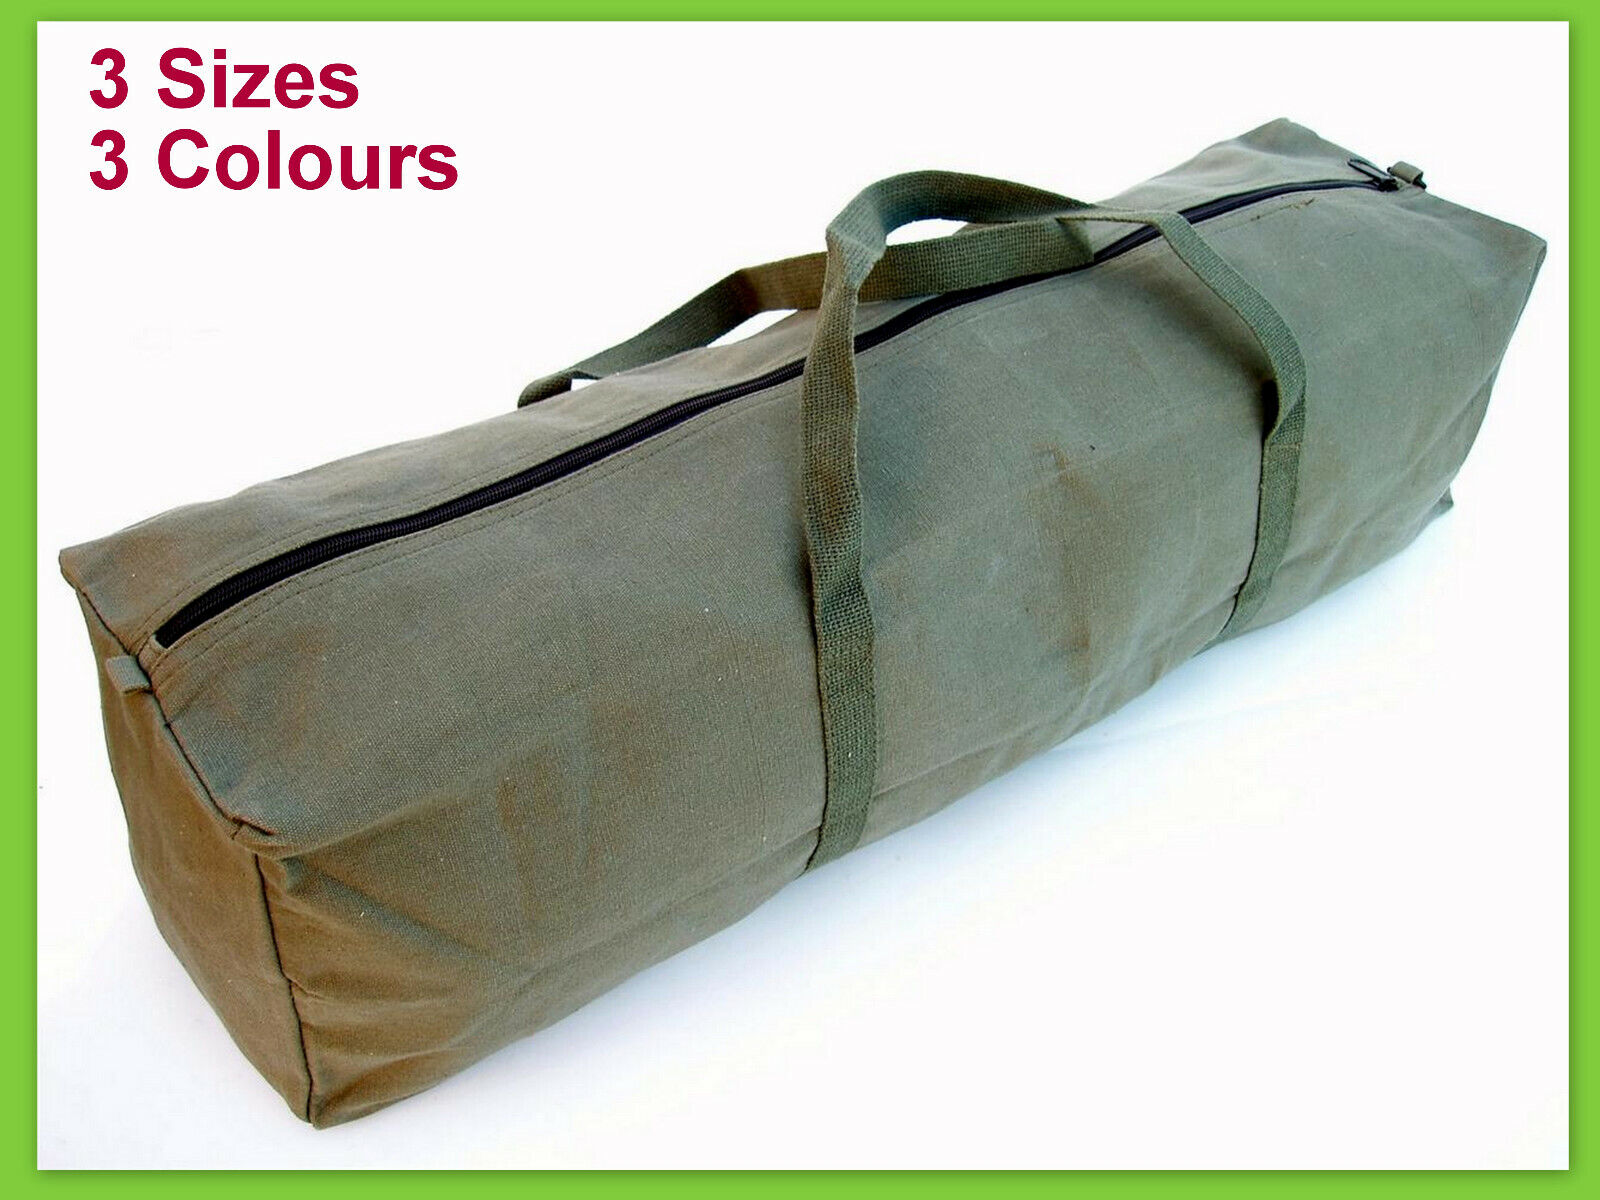 9b776cec0b66 New Heavy Duty Canvas Tool Carry Bag Travel Luggage Duffel Duffle Tote Zip  3Size